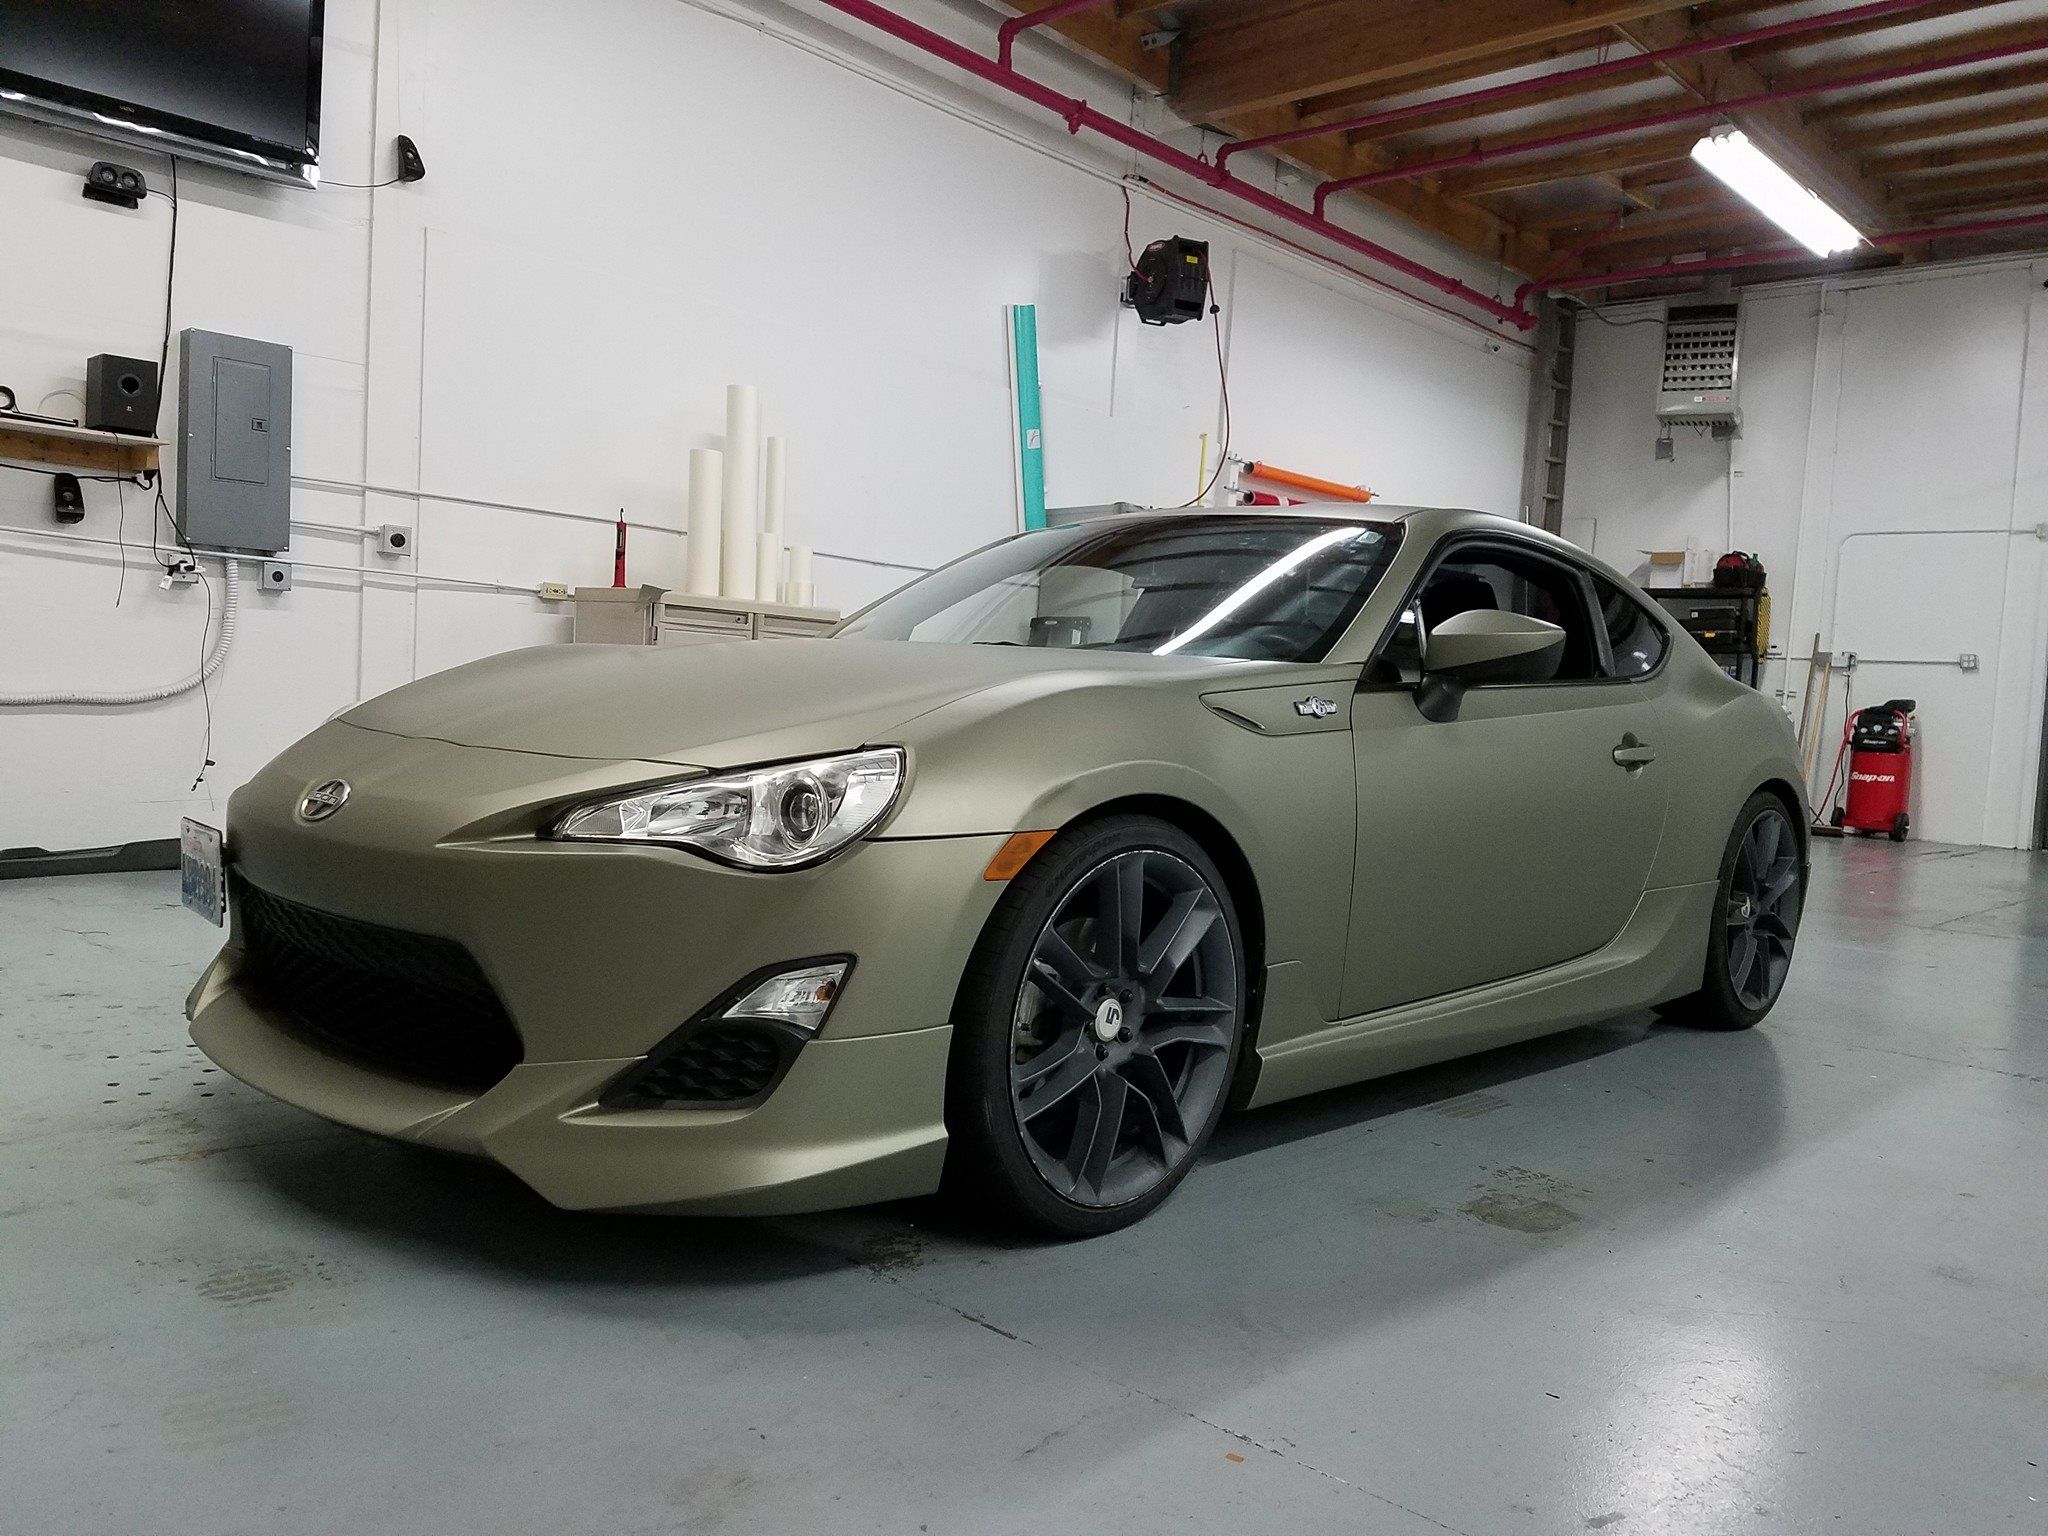 Full color change wrap on scion frs in matte metallic midnight sand avery dennison